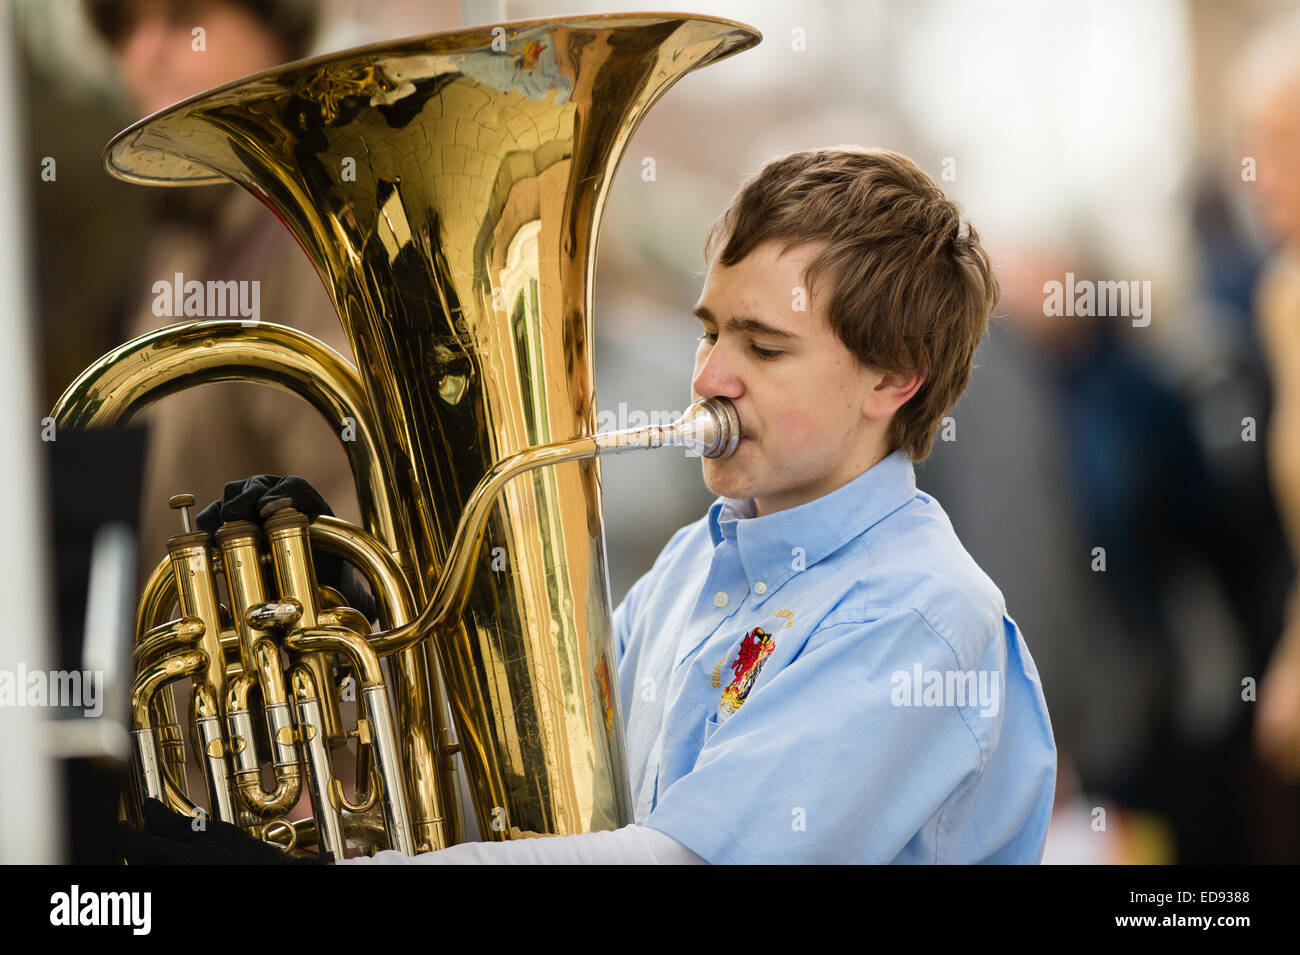 A young man playing tuba in a brass band UK - Stock Image